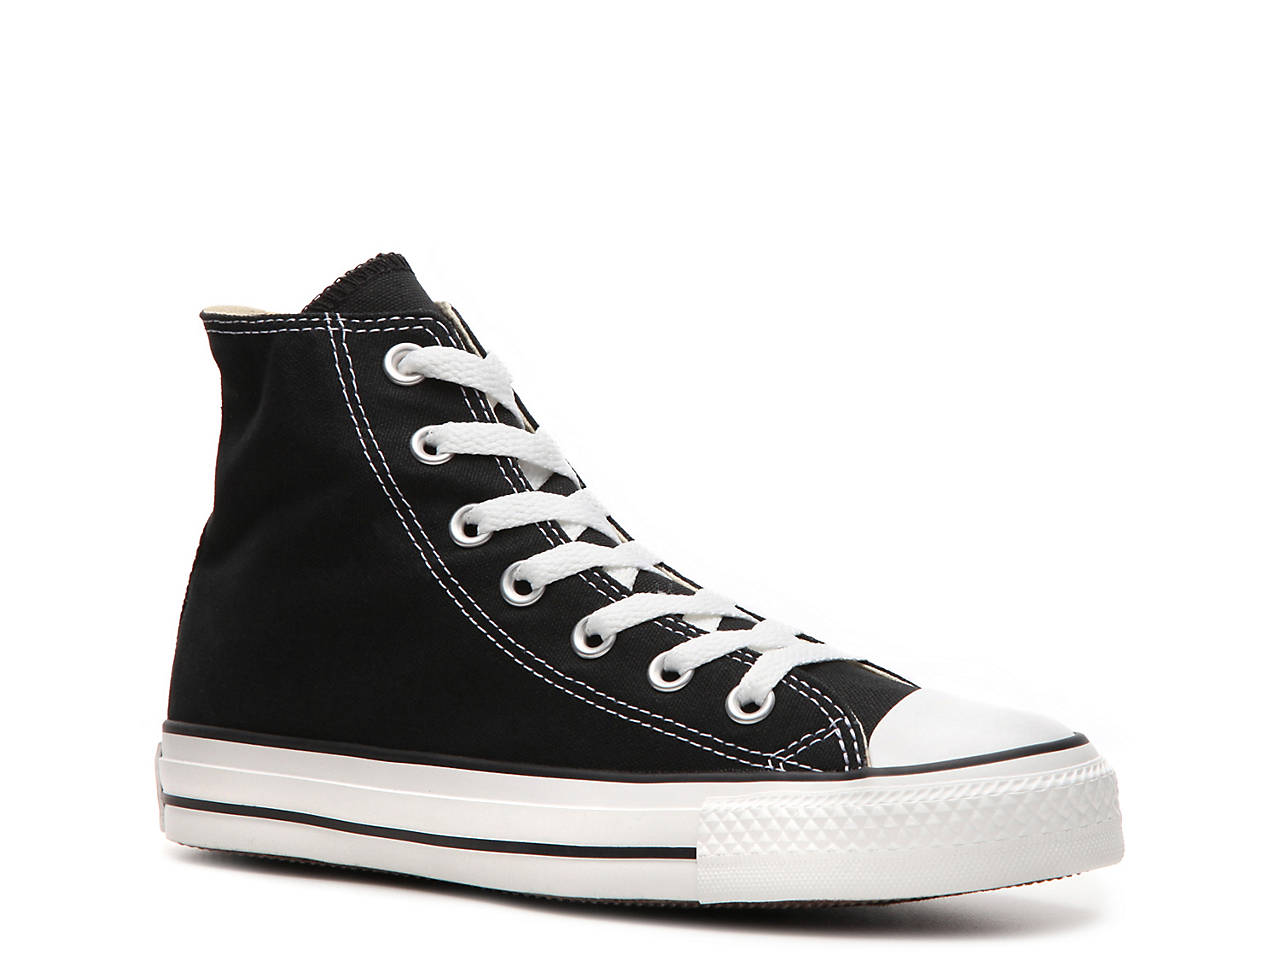 4a44dbc4e5f Converse Chuck Taylor All Star High-Top Sneaker - Women s Women s ...